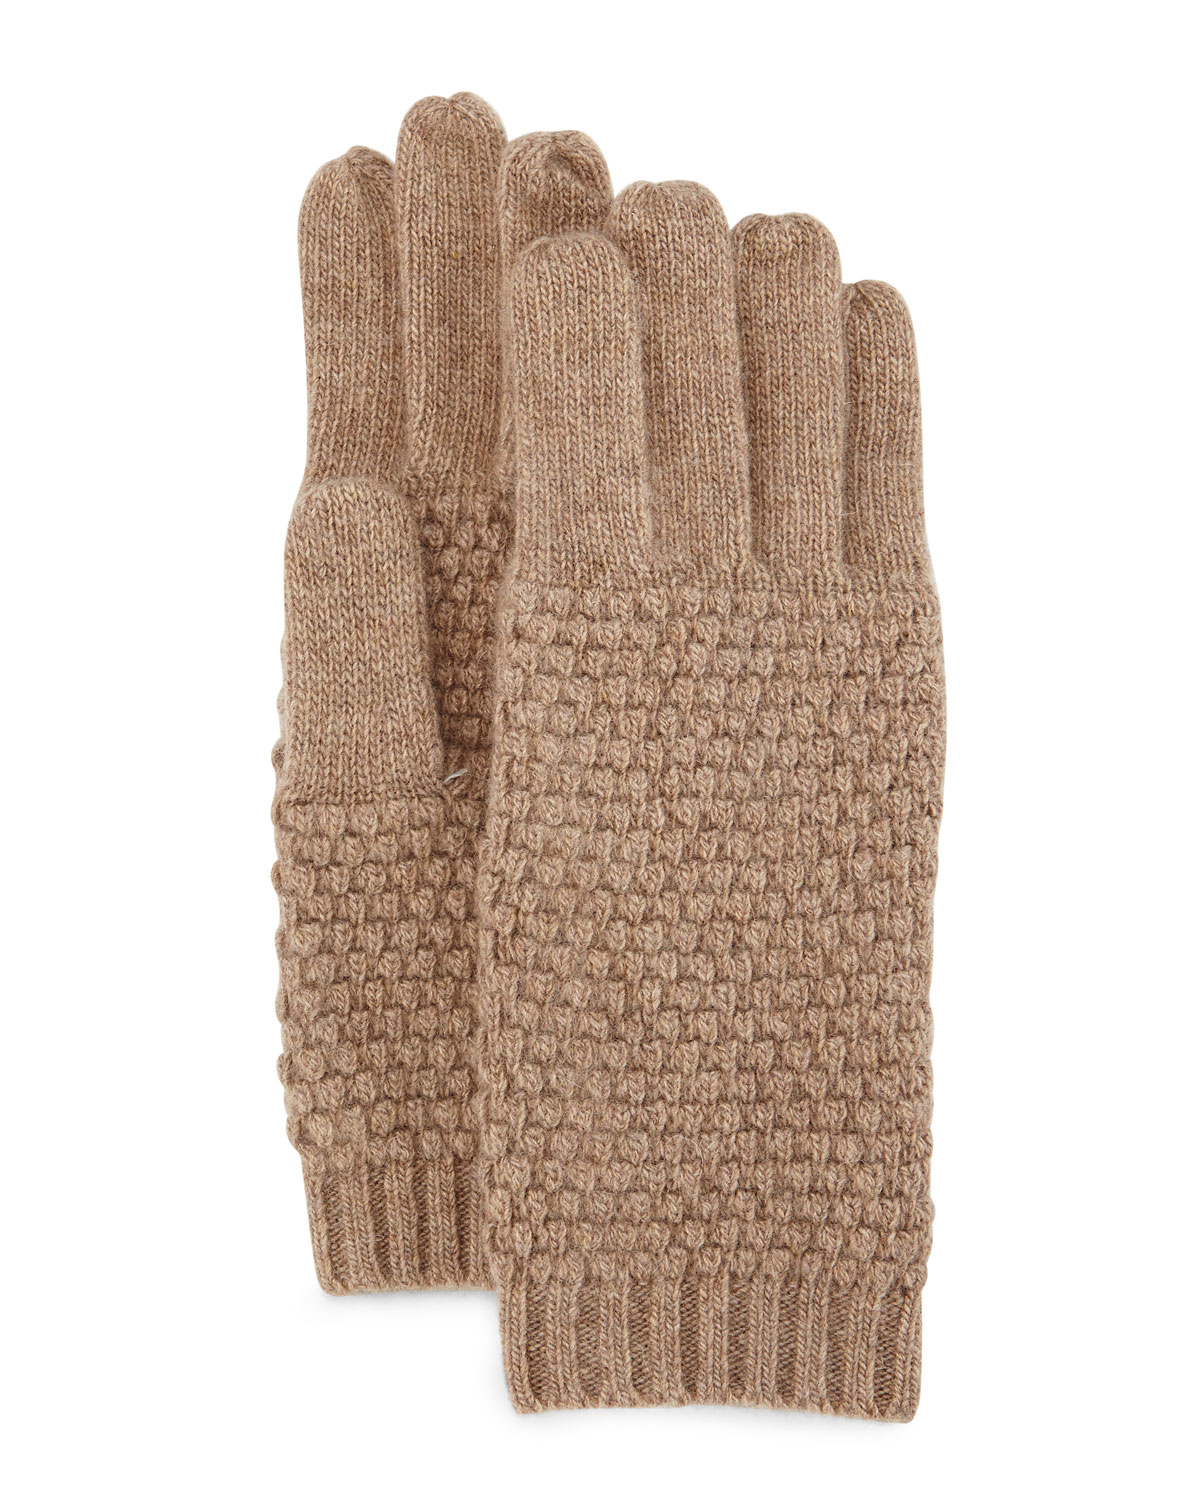 Knitting Pattern Cashmere Gloves : Portolano Cashmere Popcorn-knit Gloves in Brown Lyst